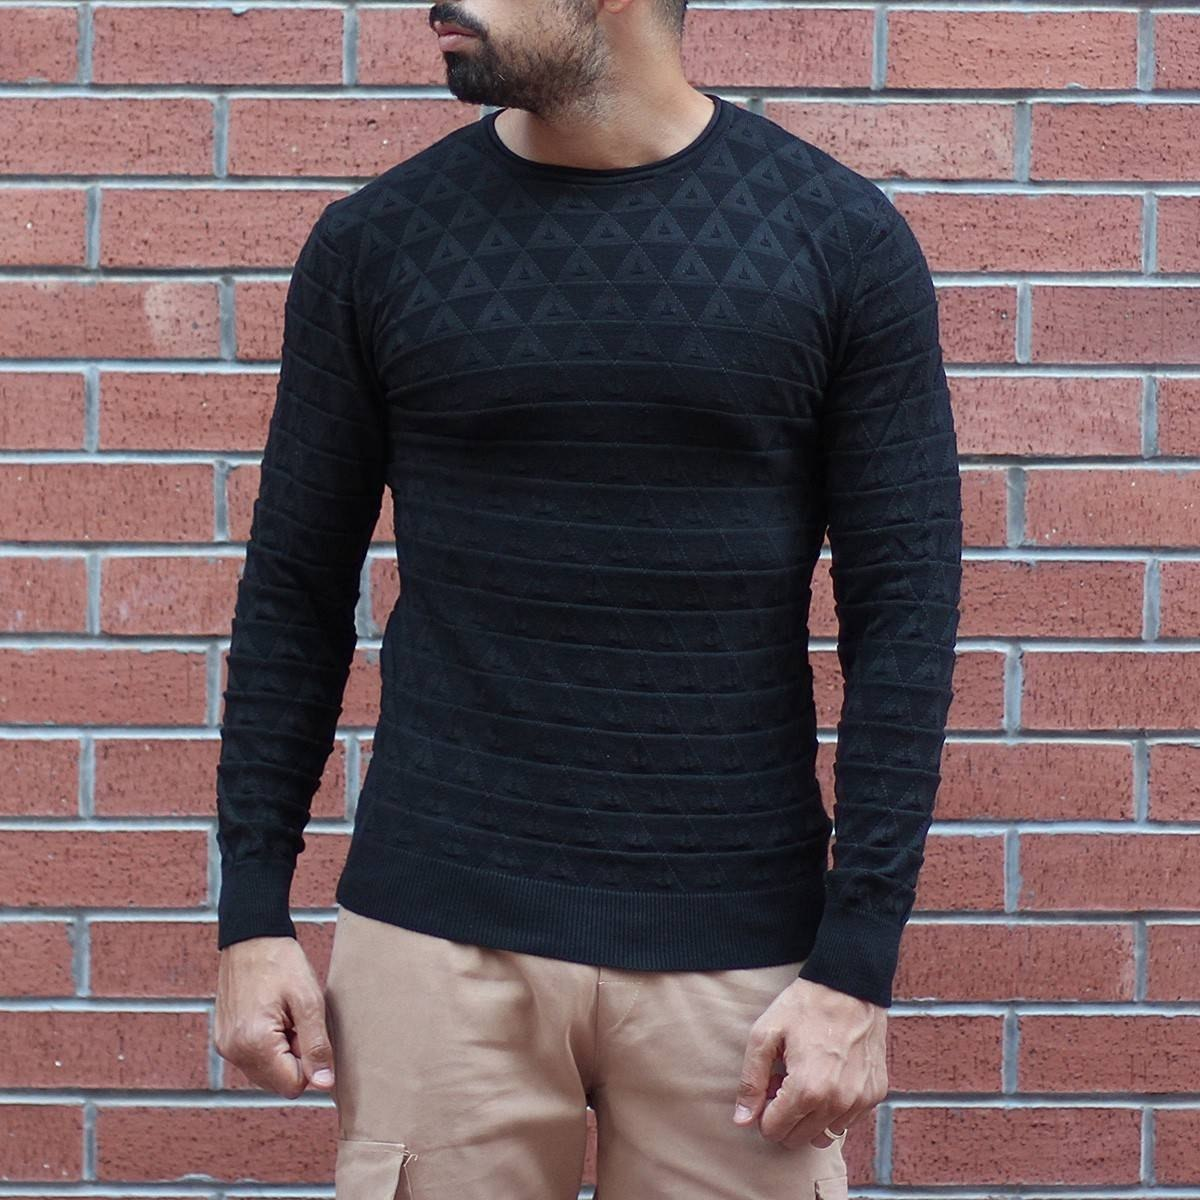 Men's Diamond Pattern Muscle Fit Pullover Black Mv Premium Brand - 1